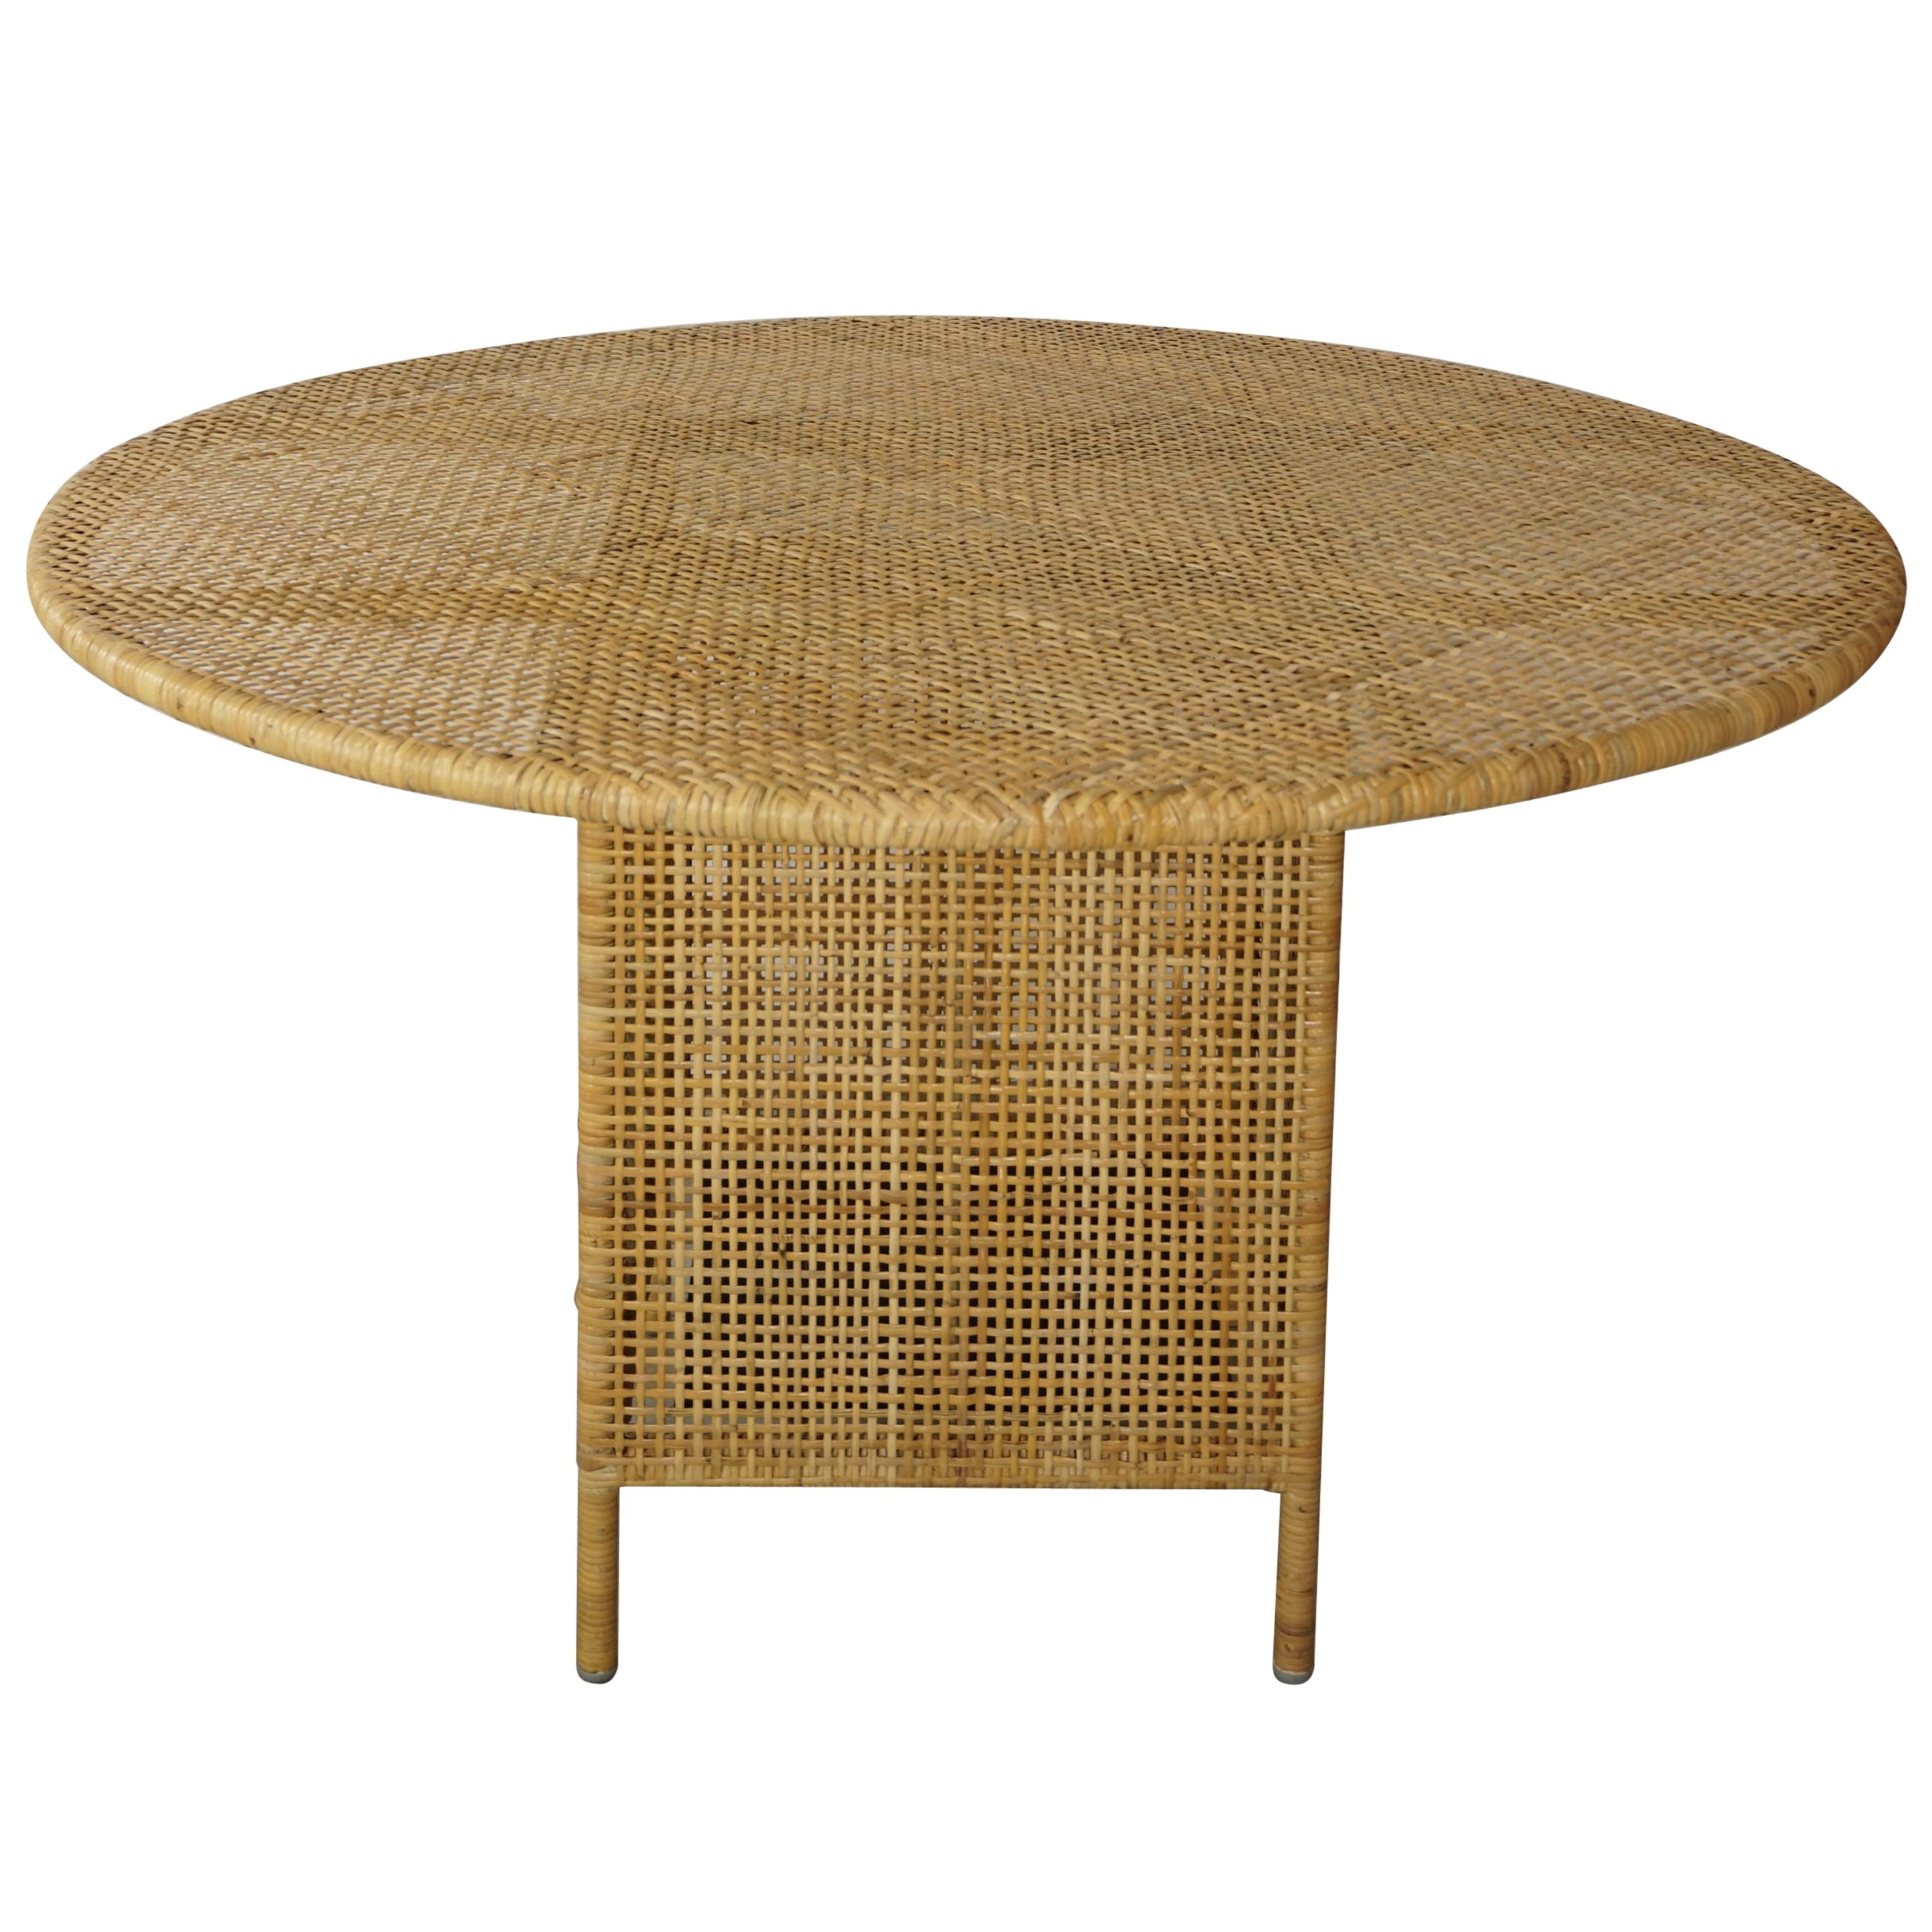 French Design Braided Rattan Round Dining Table